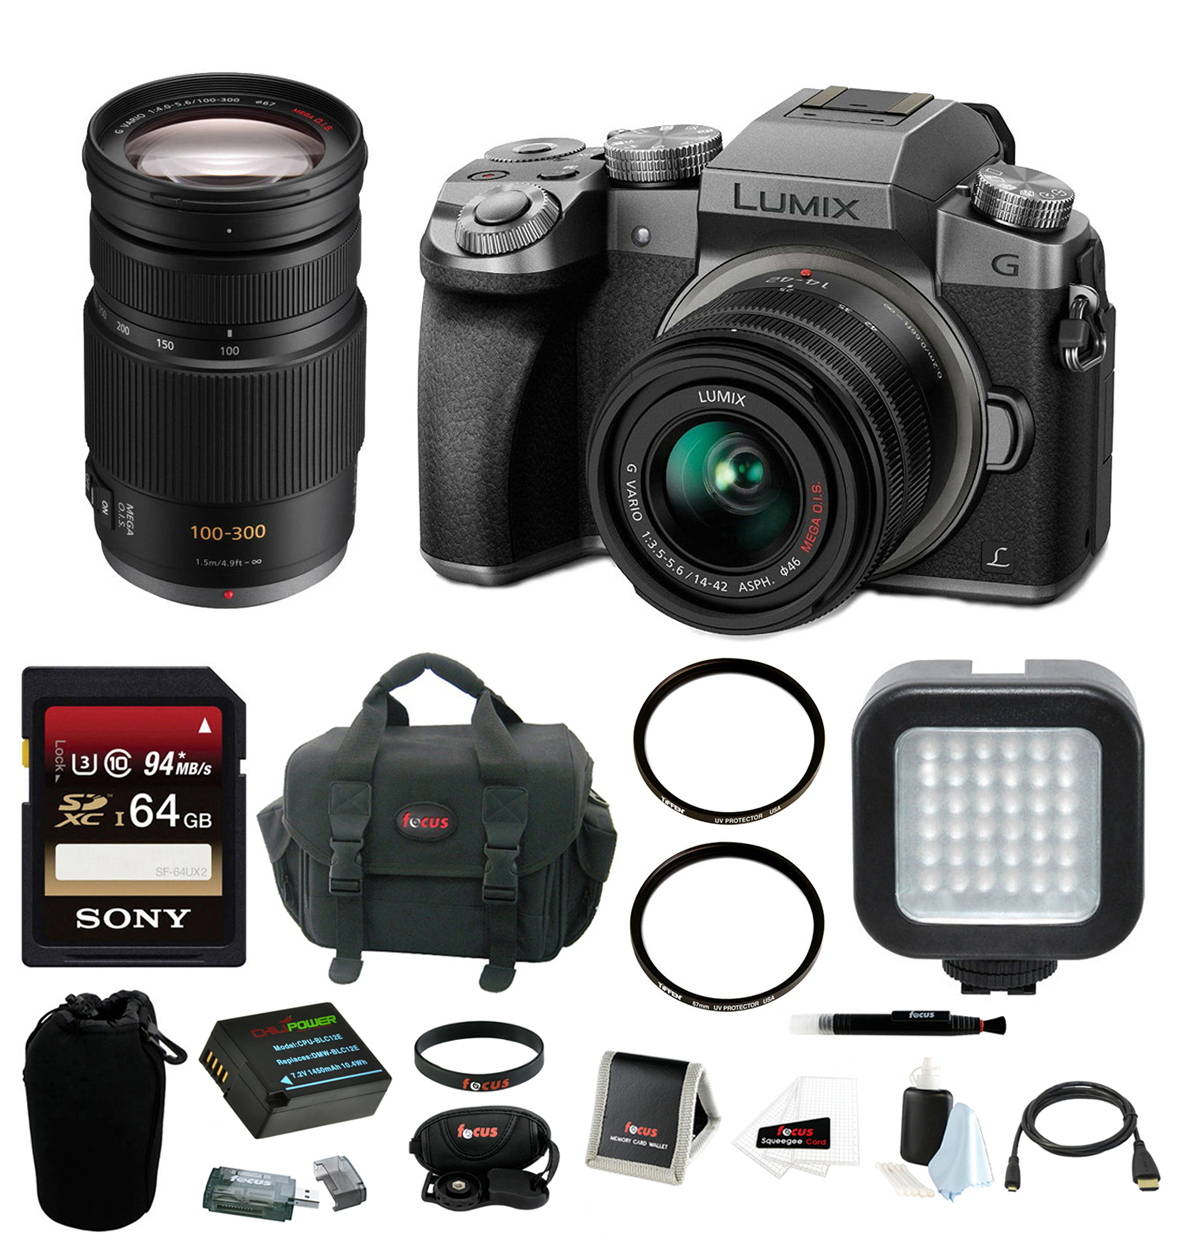 Panasonic LUMIX G7 Camera Kit (Silver) with 14-42mm and 100-300mm Lenses by Panasonic